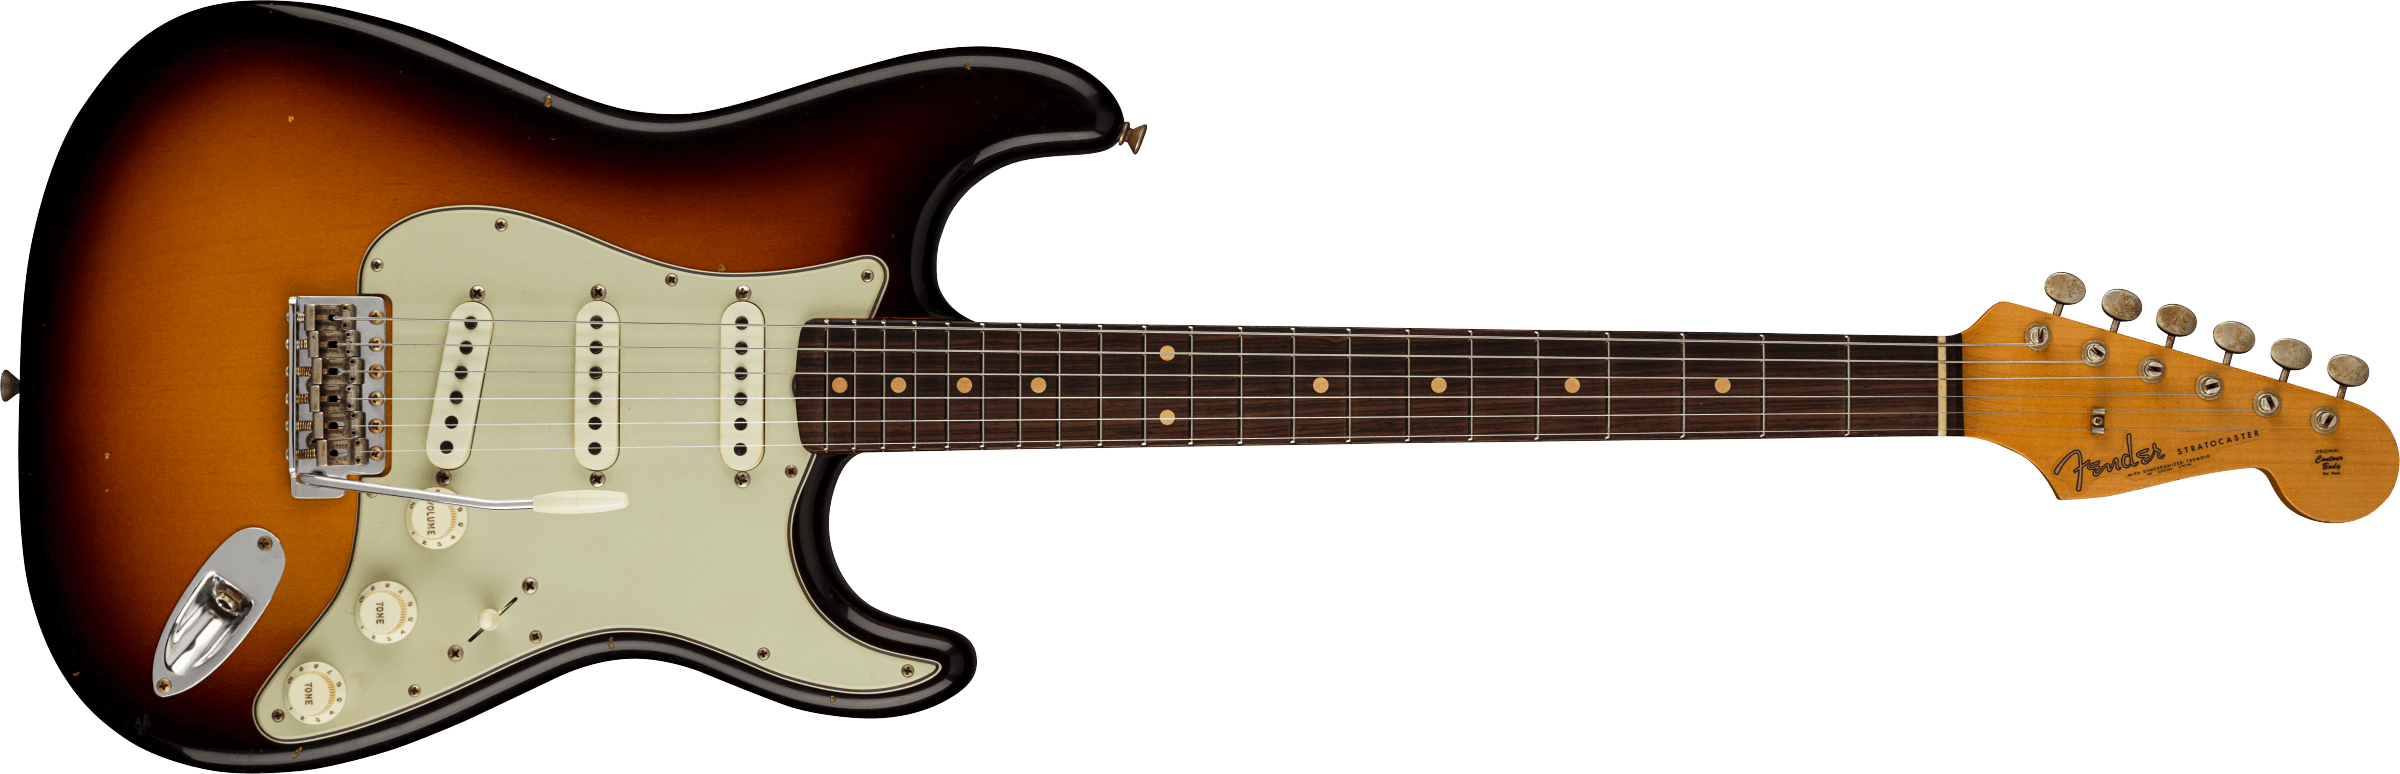 FENDER-Limited-Edition-62-63-Stratocaster-Journeyman-Relic-Rosewood-Fingerboard-Faded-Aged-3-Color-Sunburst-sku-571005155